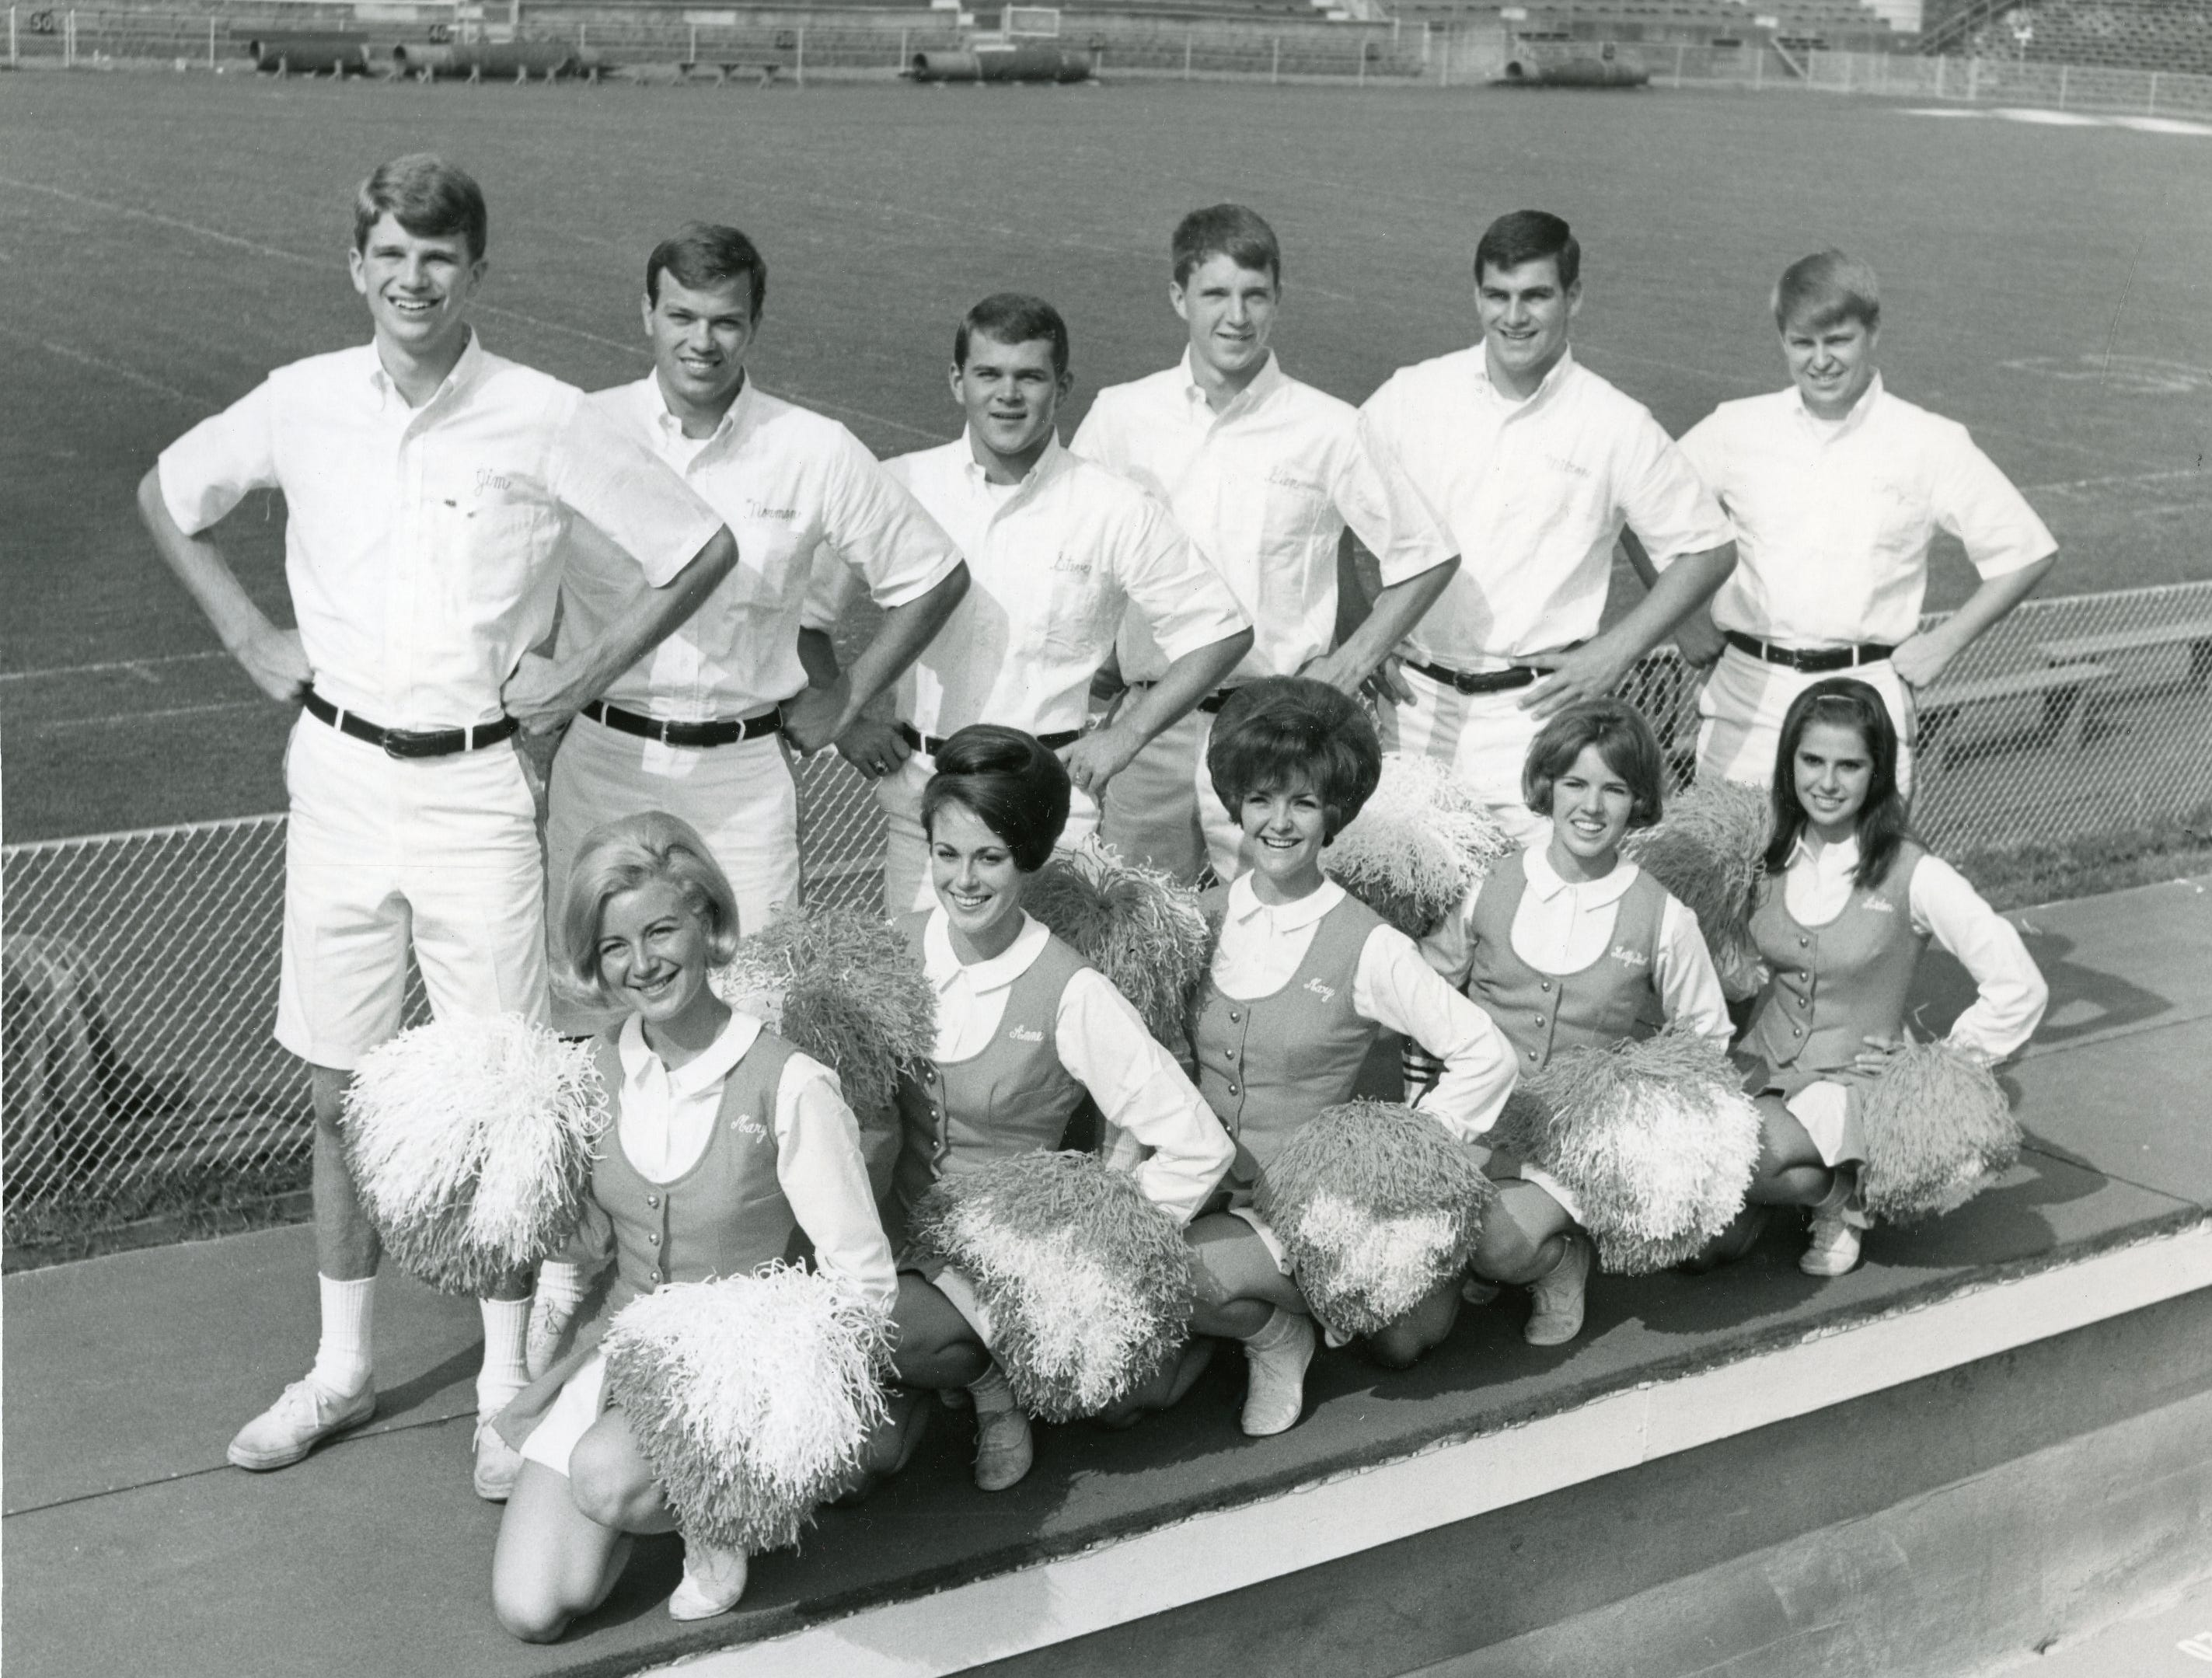 University of Tennessee cheerleaders, September, 1965, included (front) Mary Huddleston, Franny McClain, Mary Gwyn, Betty Gail Cooper, Arden Sampson; (back) Jim O'Steen, Norman Estep, Steve Hambaugh, Glen Smotherman, Milton Ellis and Terry Abernathy.